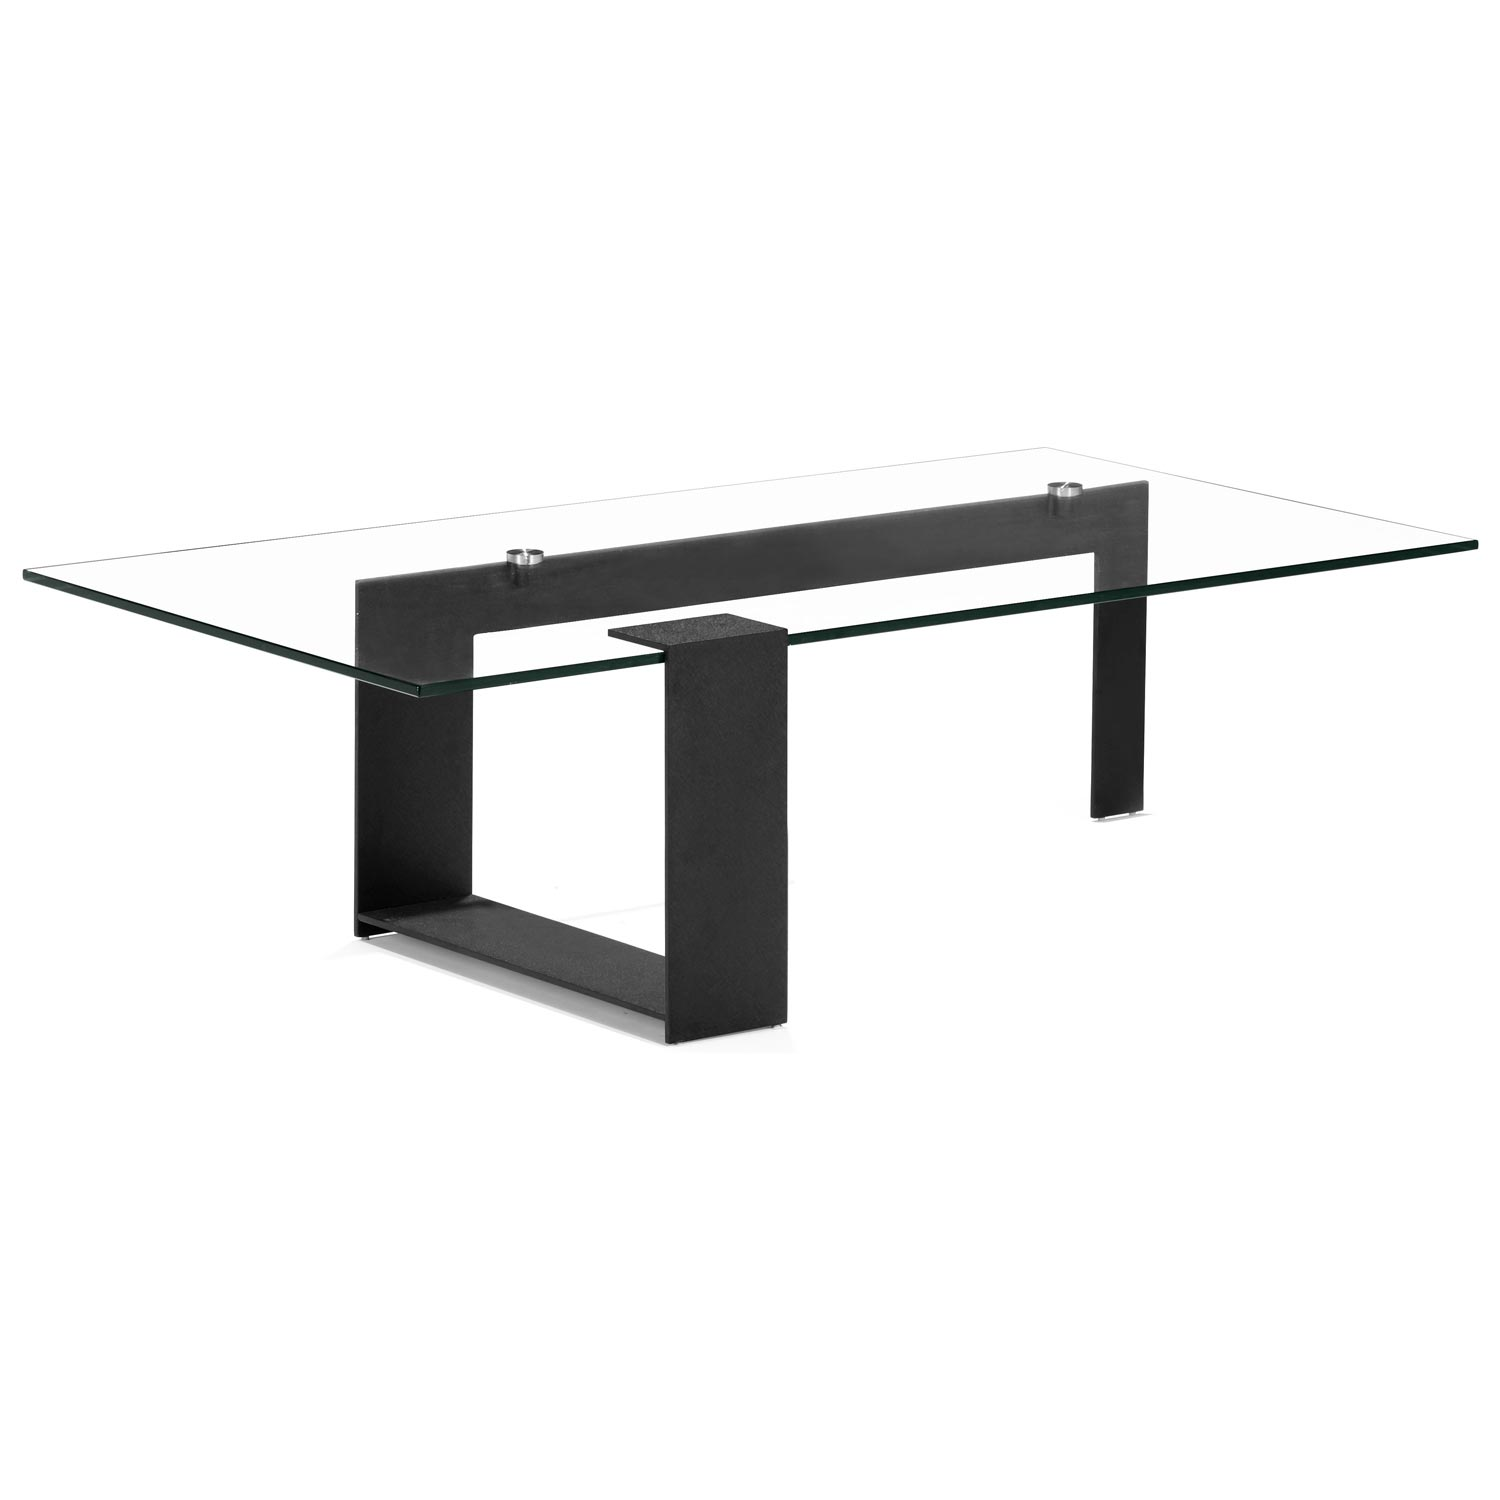 Zeon Coffee Table - Tempered Glass, Black - ZM-404195